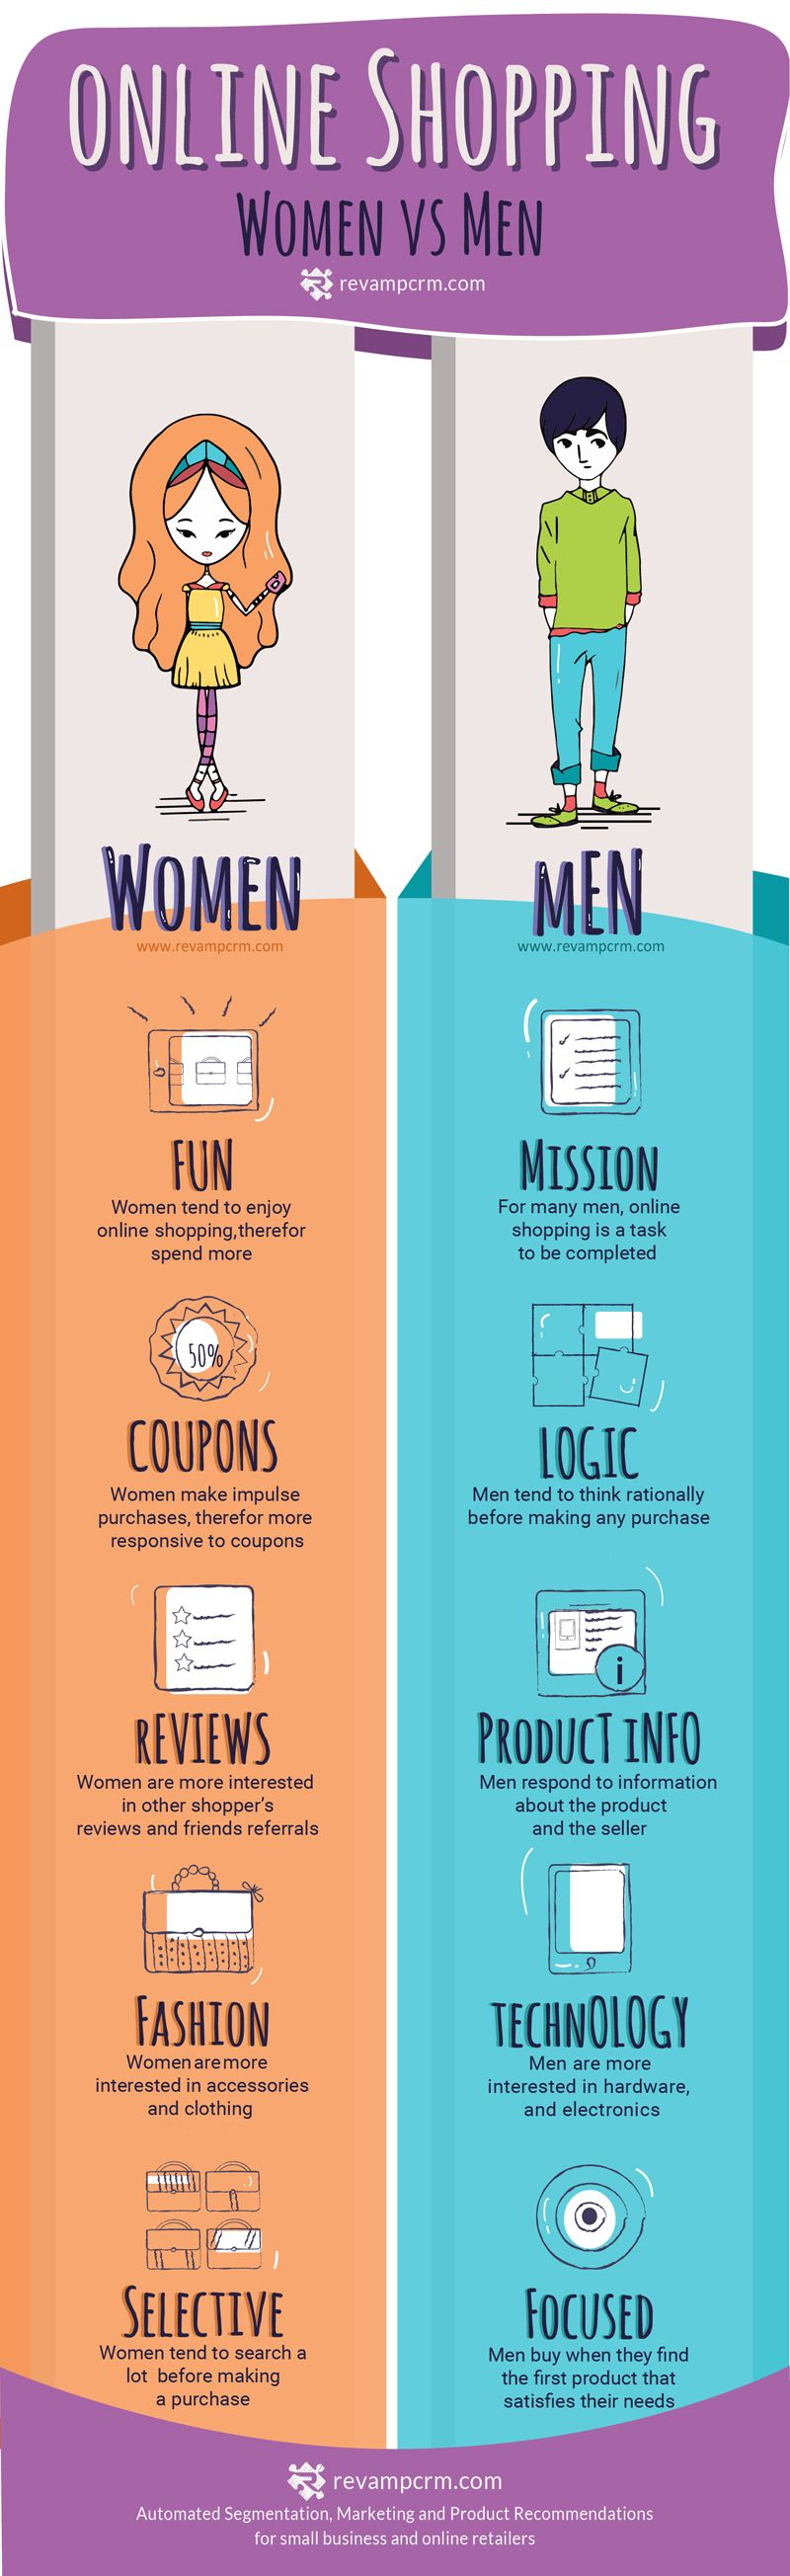 Online Shopping: Women vs Men